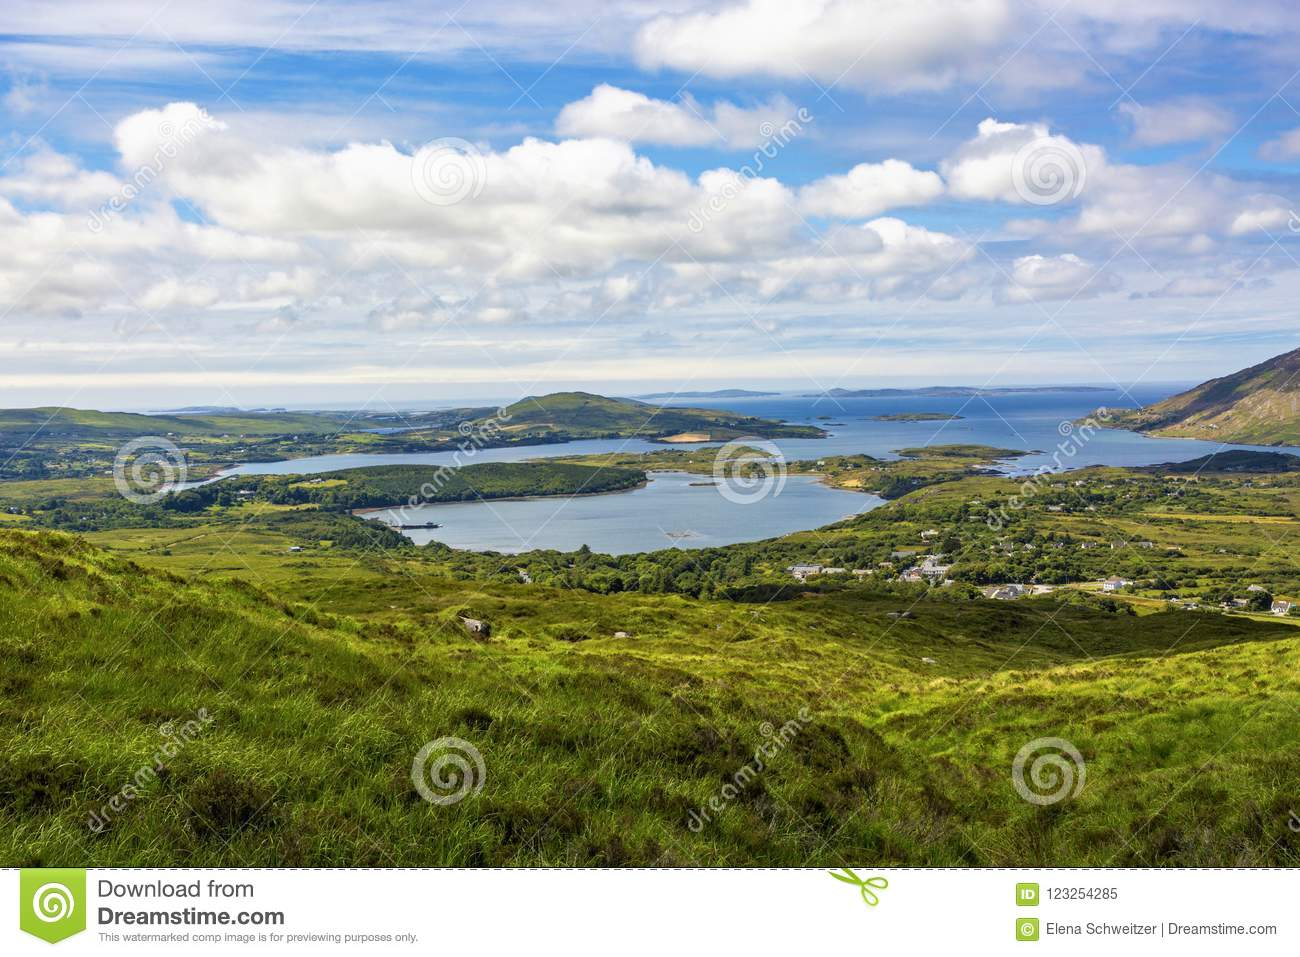 Download Connemara National Park stock image. Image of ireland - 123254285